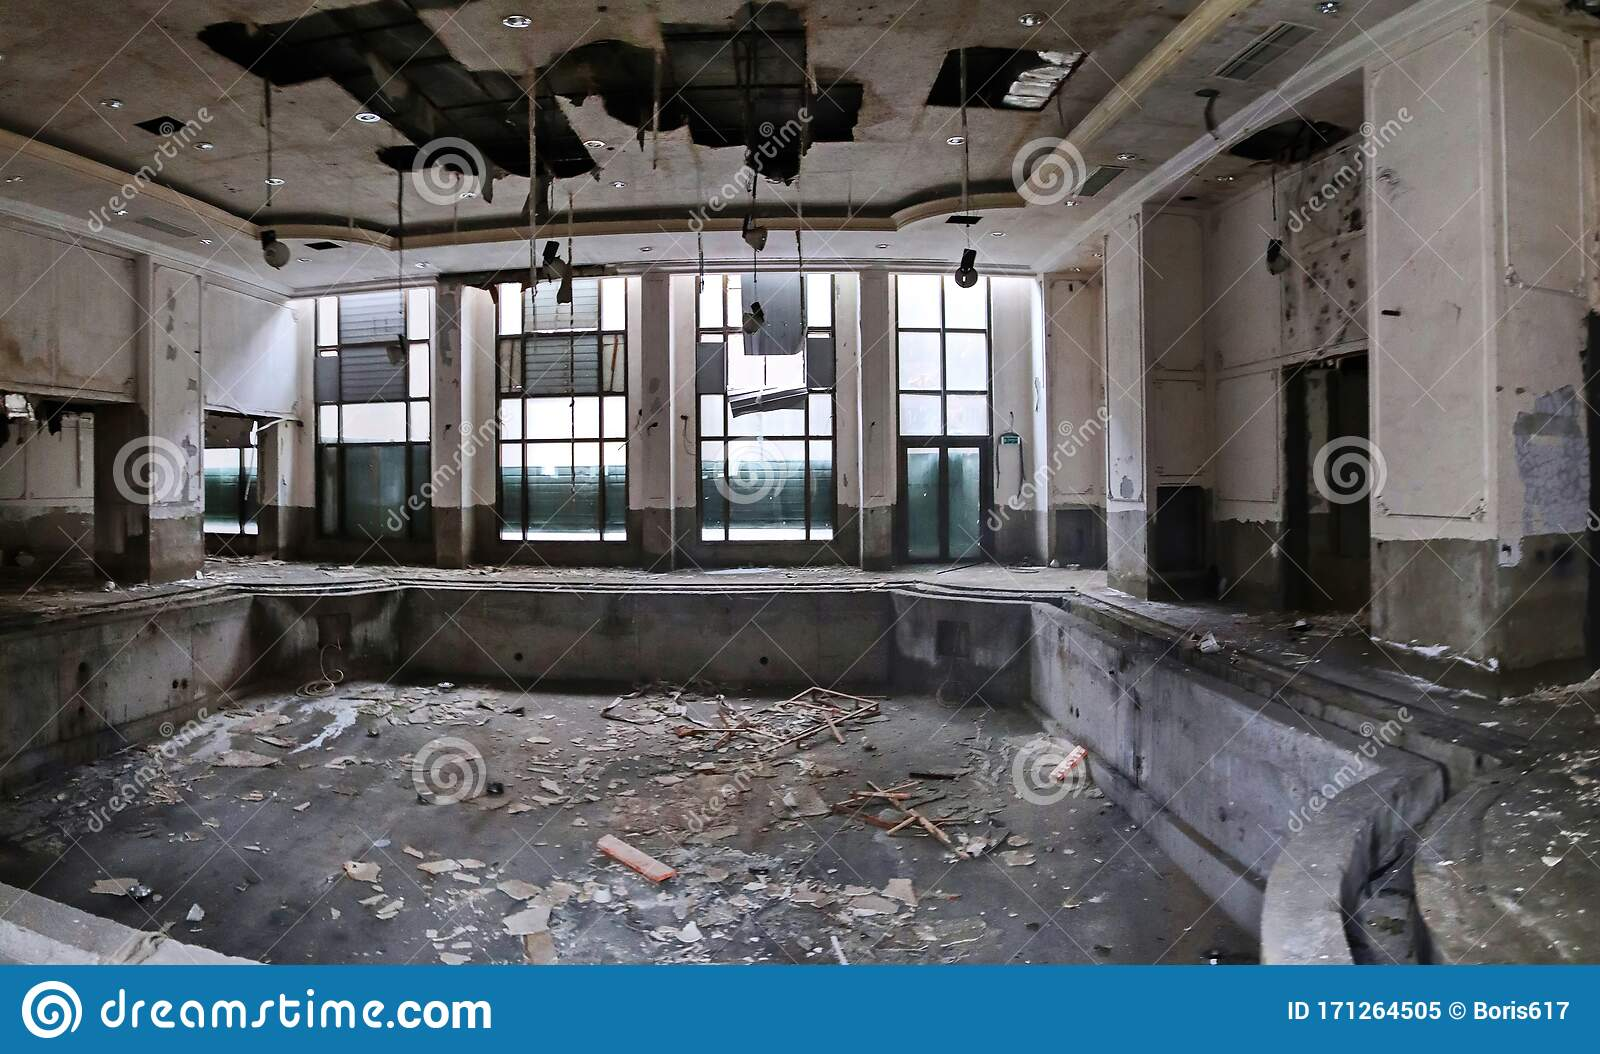 Swimming Pool In A Dilapidated Abandoned Hotel Stock Image Image Of Hotel Decay 171264505